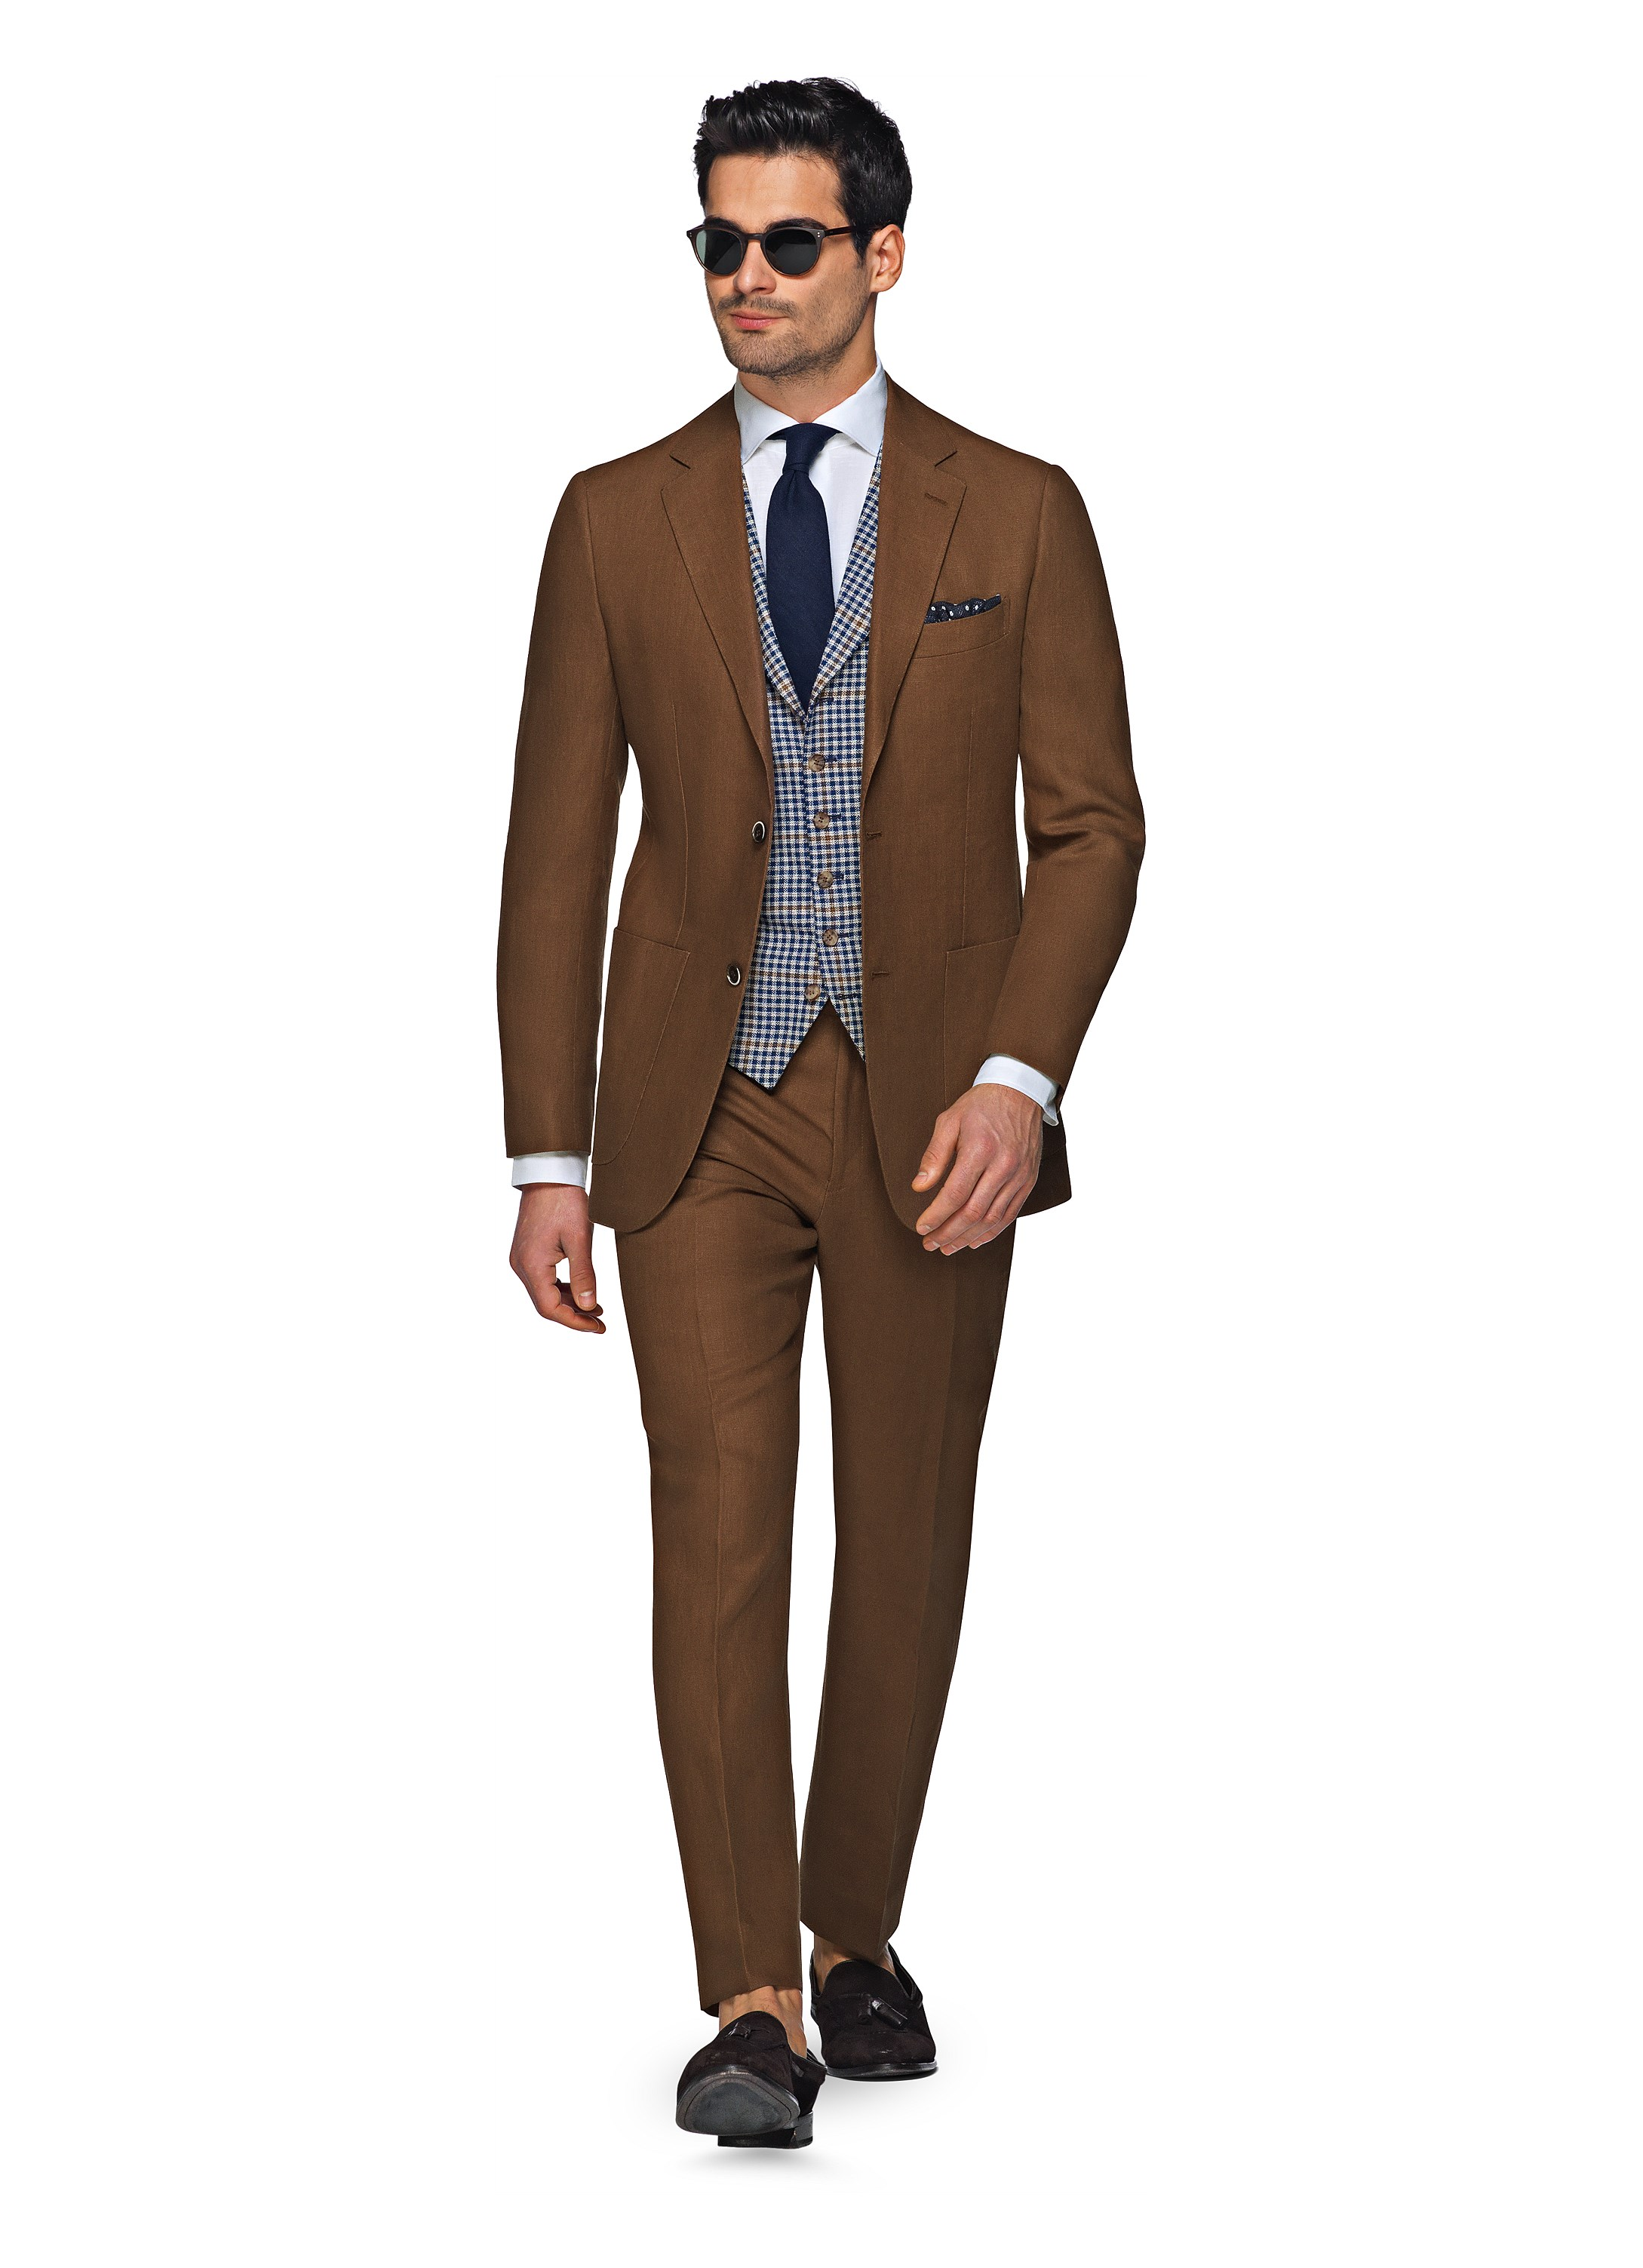 Find great deals on eBay for Men's Brown Linen Suit. Shop with confidence.